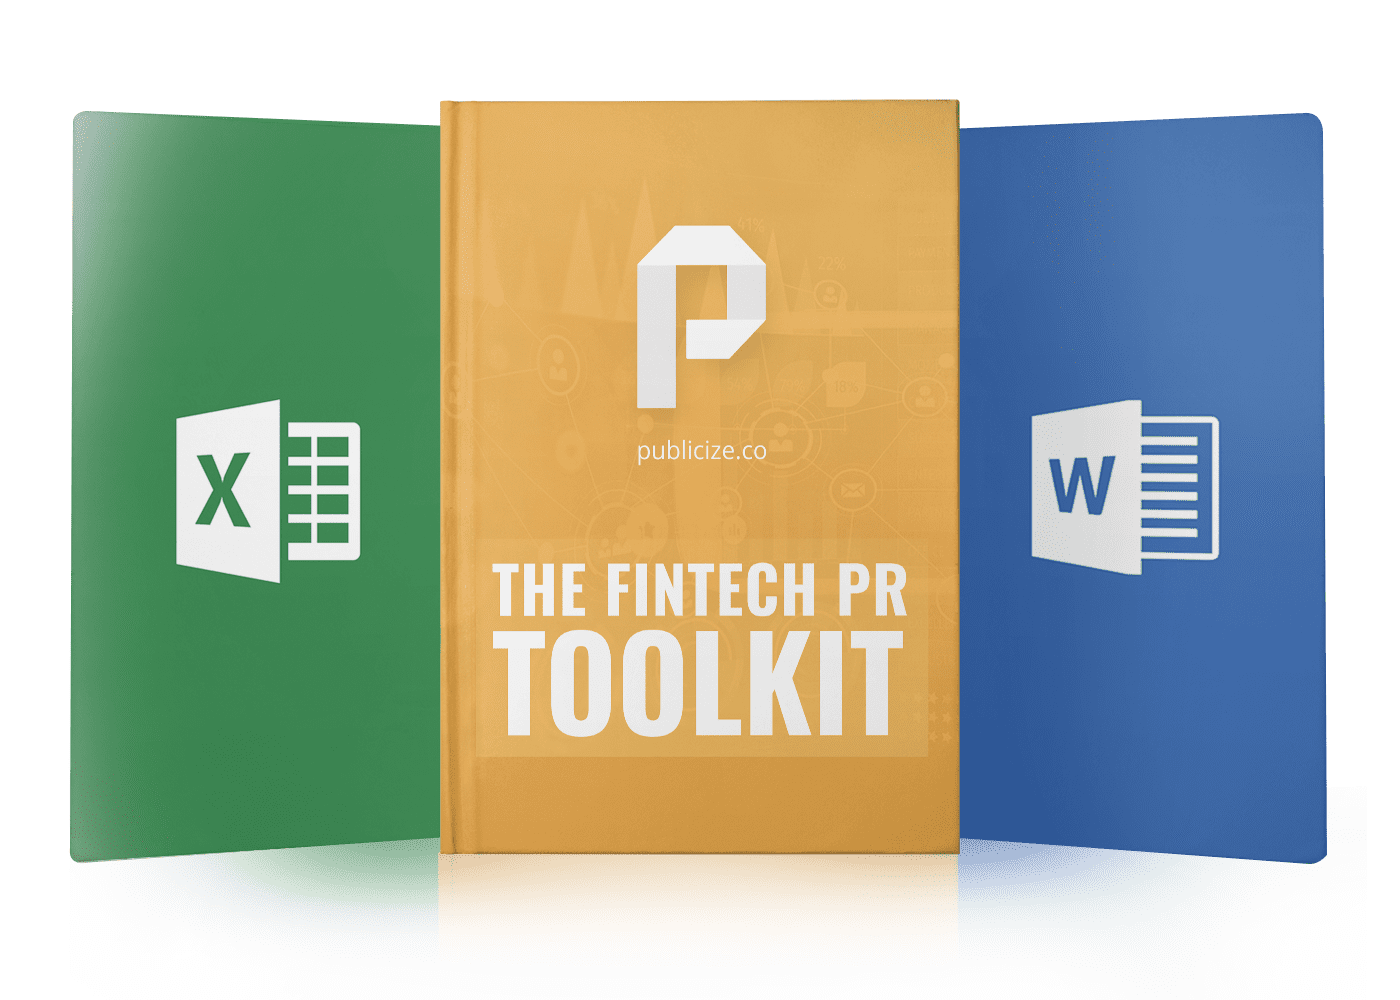 fintech book cover with excel and word